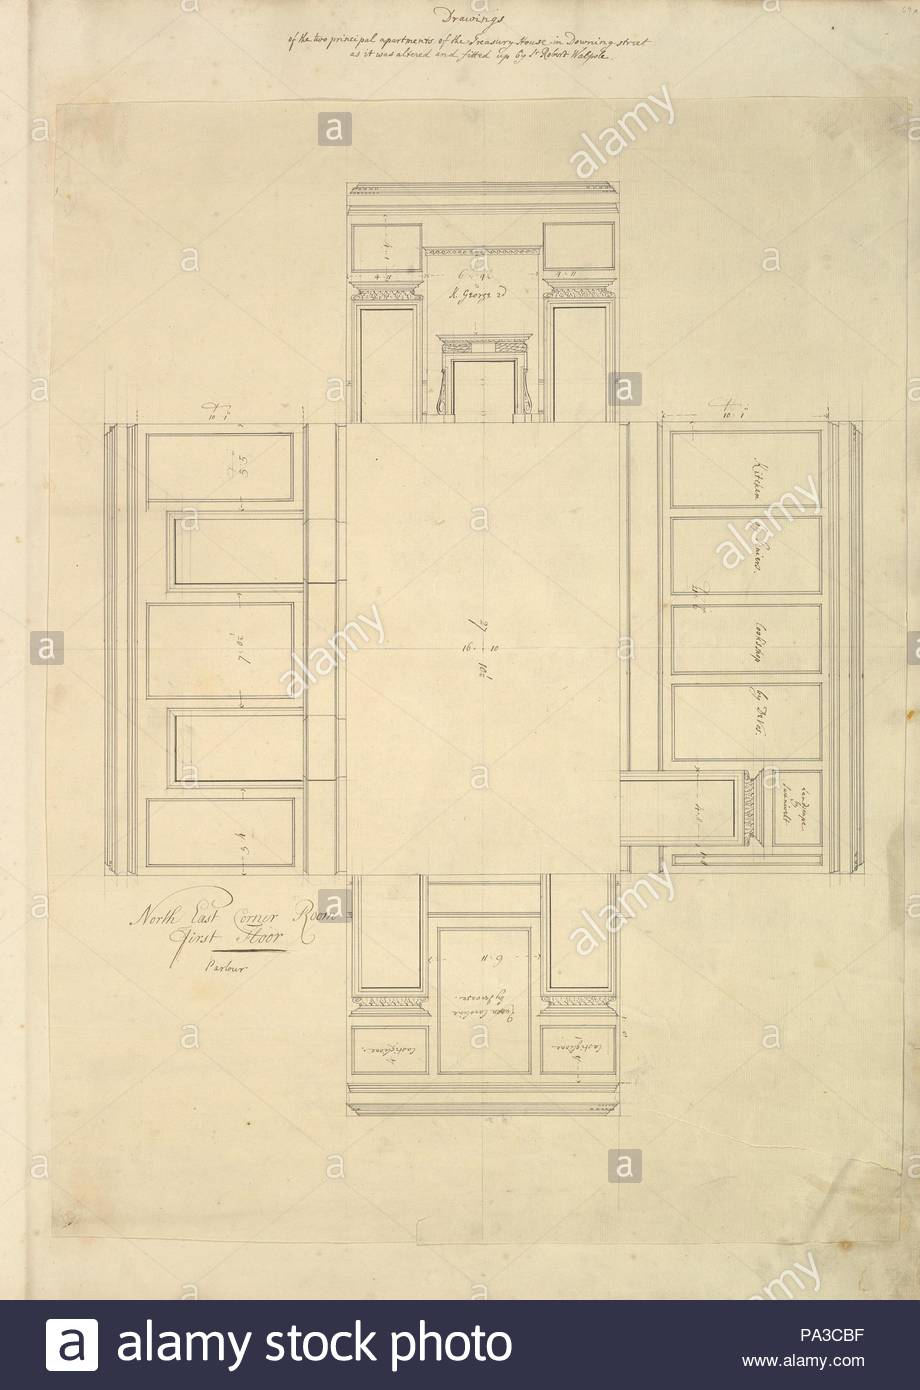 1732 42 Stock Photos Images Alamy X475 Wiring Diagram Treasury House 10 Downing Street London Plan Of The First Floor Parlor